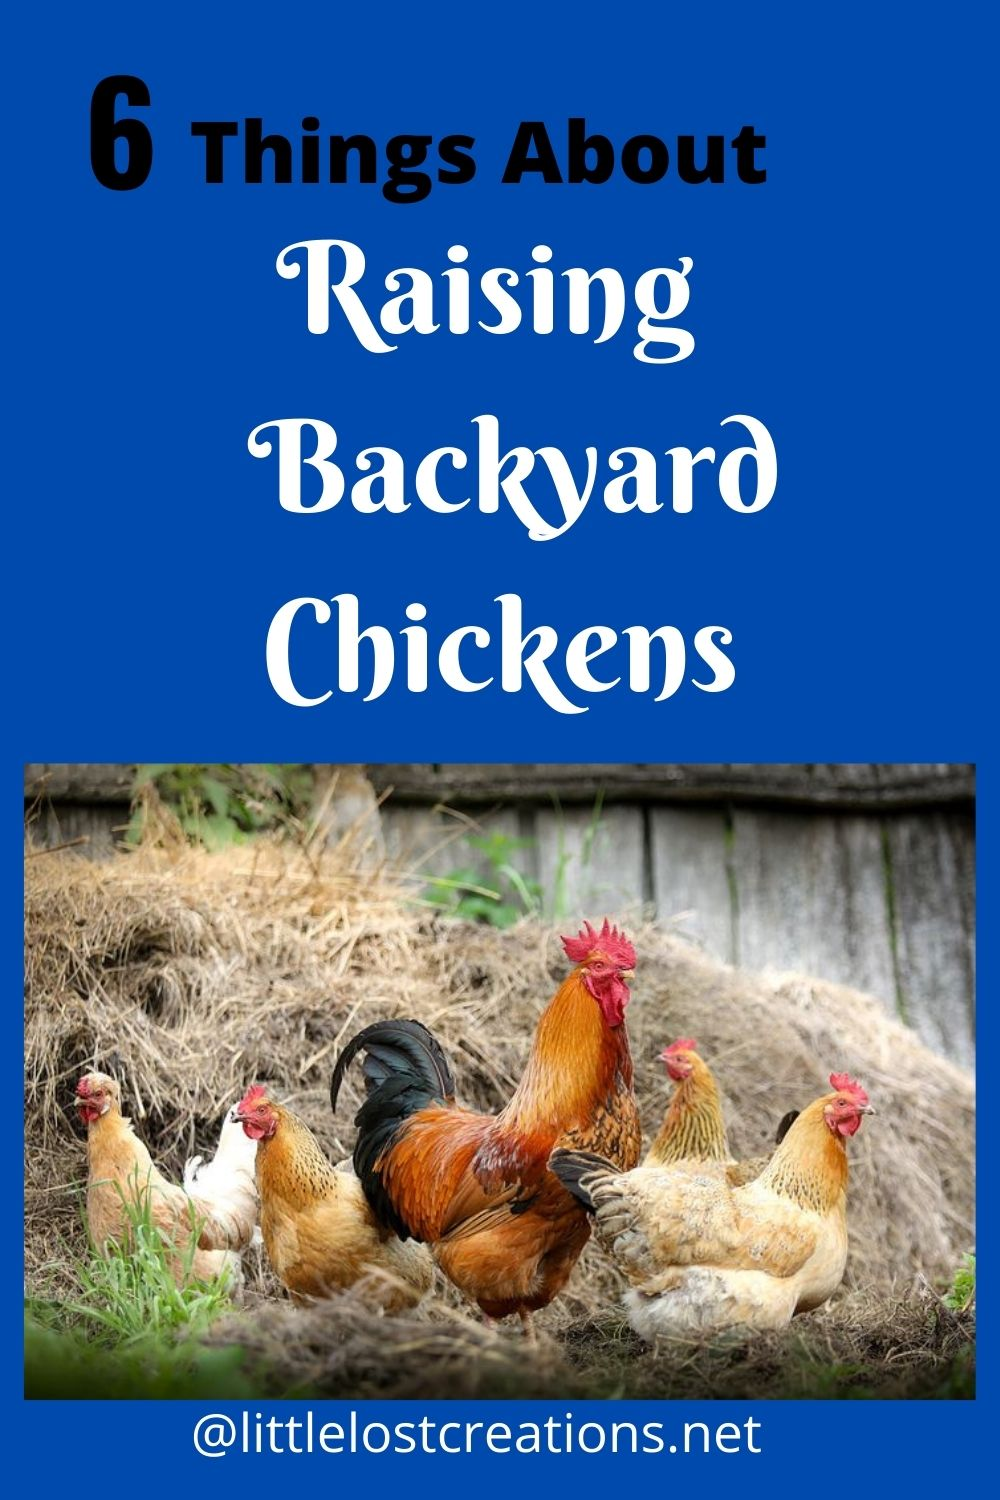 6 things about raising backyard chickens, chickens with a rooster in the straw @ littlelostcreations.net